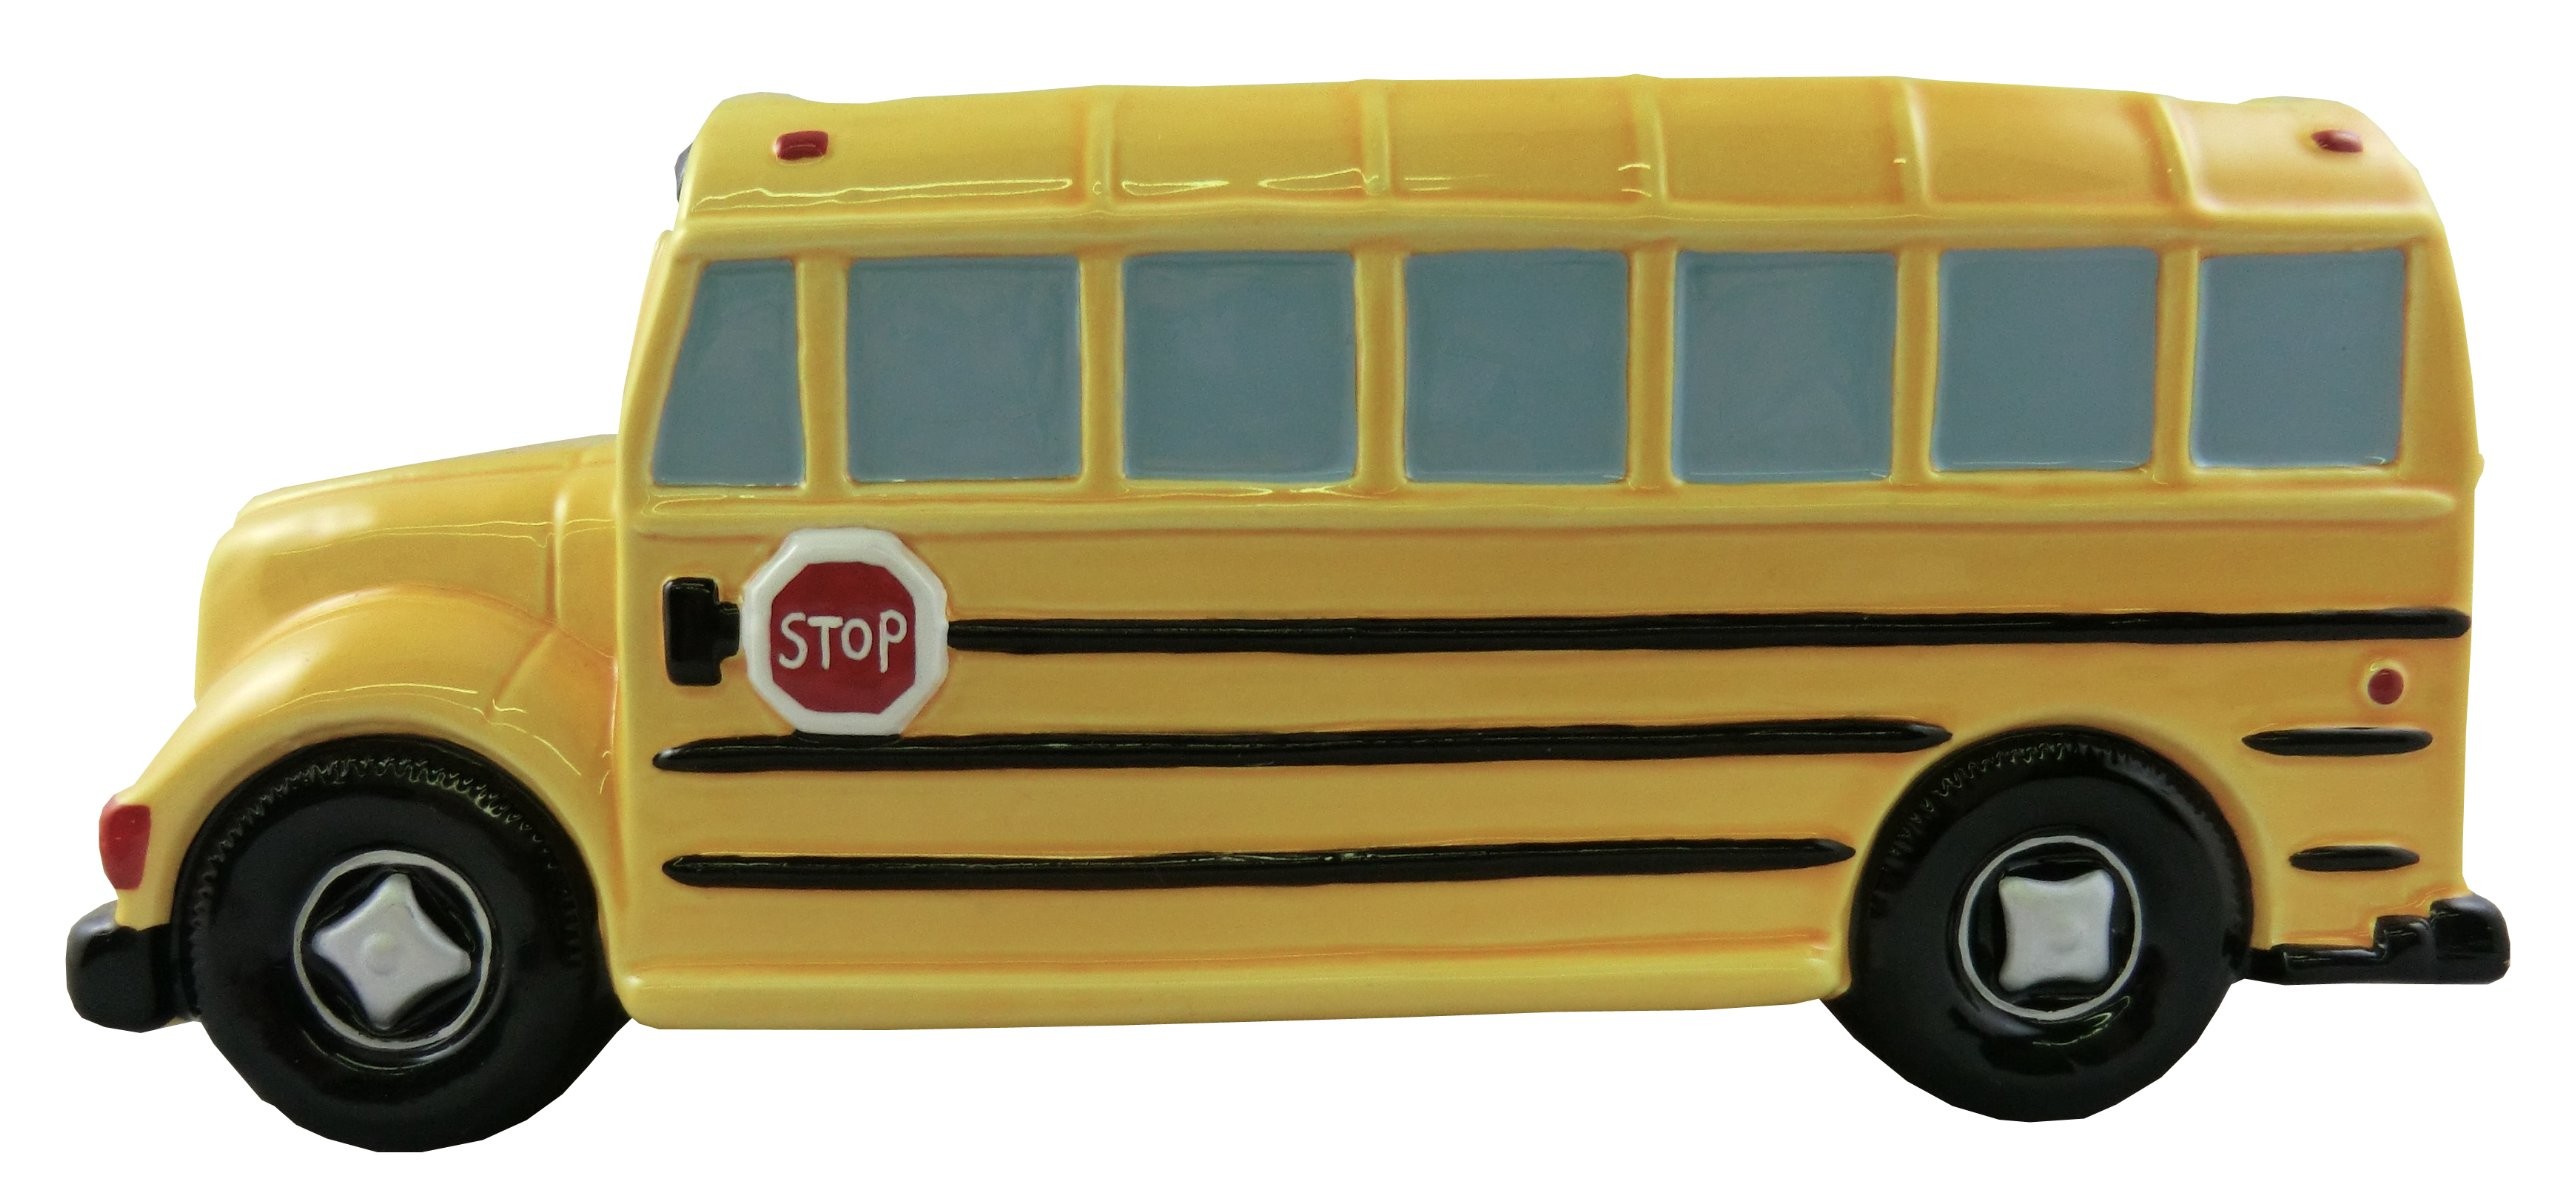 Accents & Occasions Ceramic School Bus Planter or Flower Arrangement Vase, 3-Inch